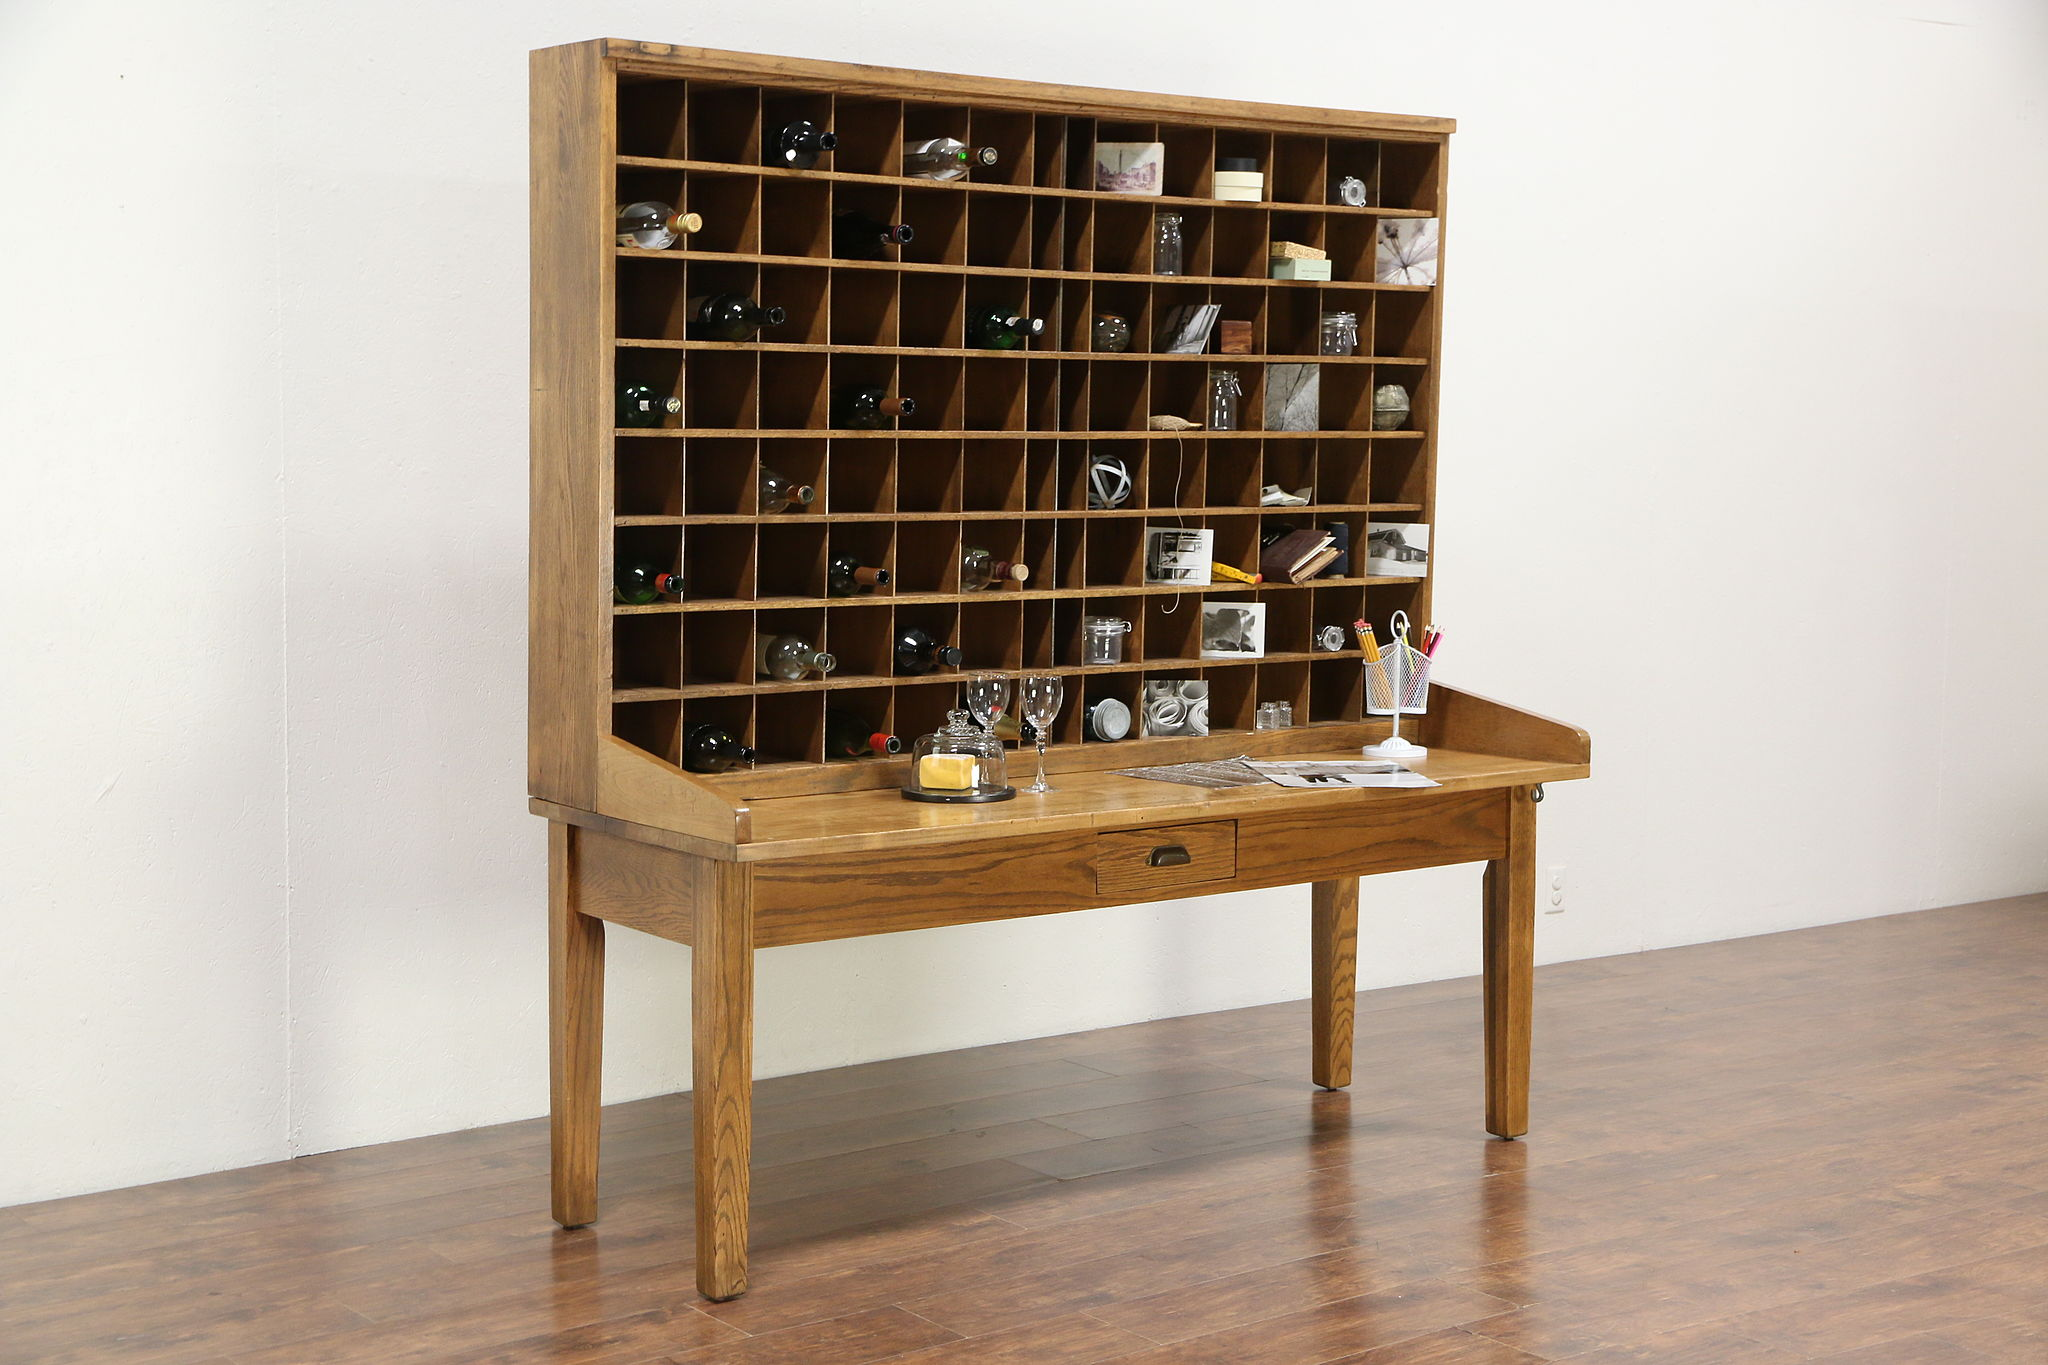 Post Office Antique Oak Mail Sorting Table, Wine Rack